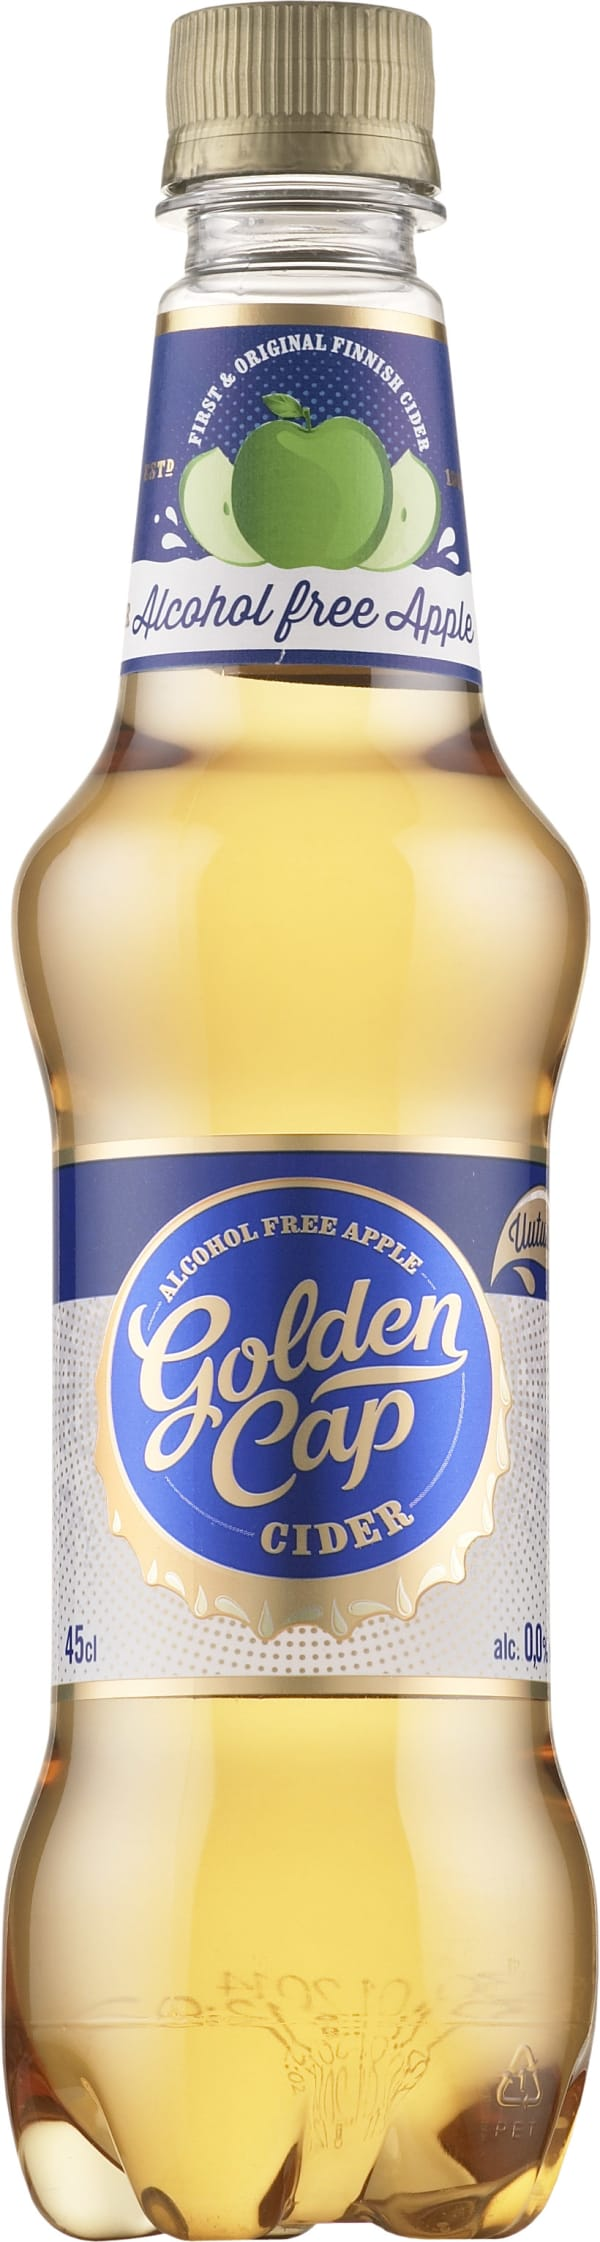 Golden Cap Alcohol Free Apple Cider plastflaska